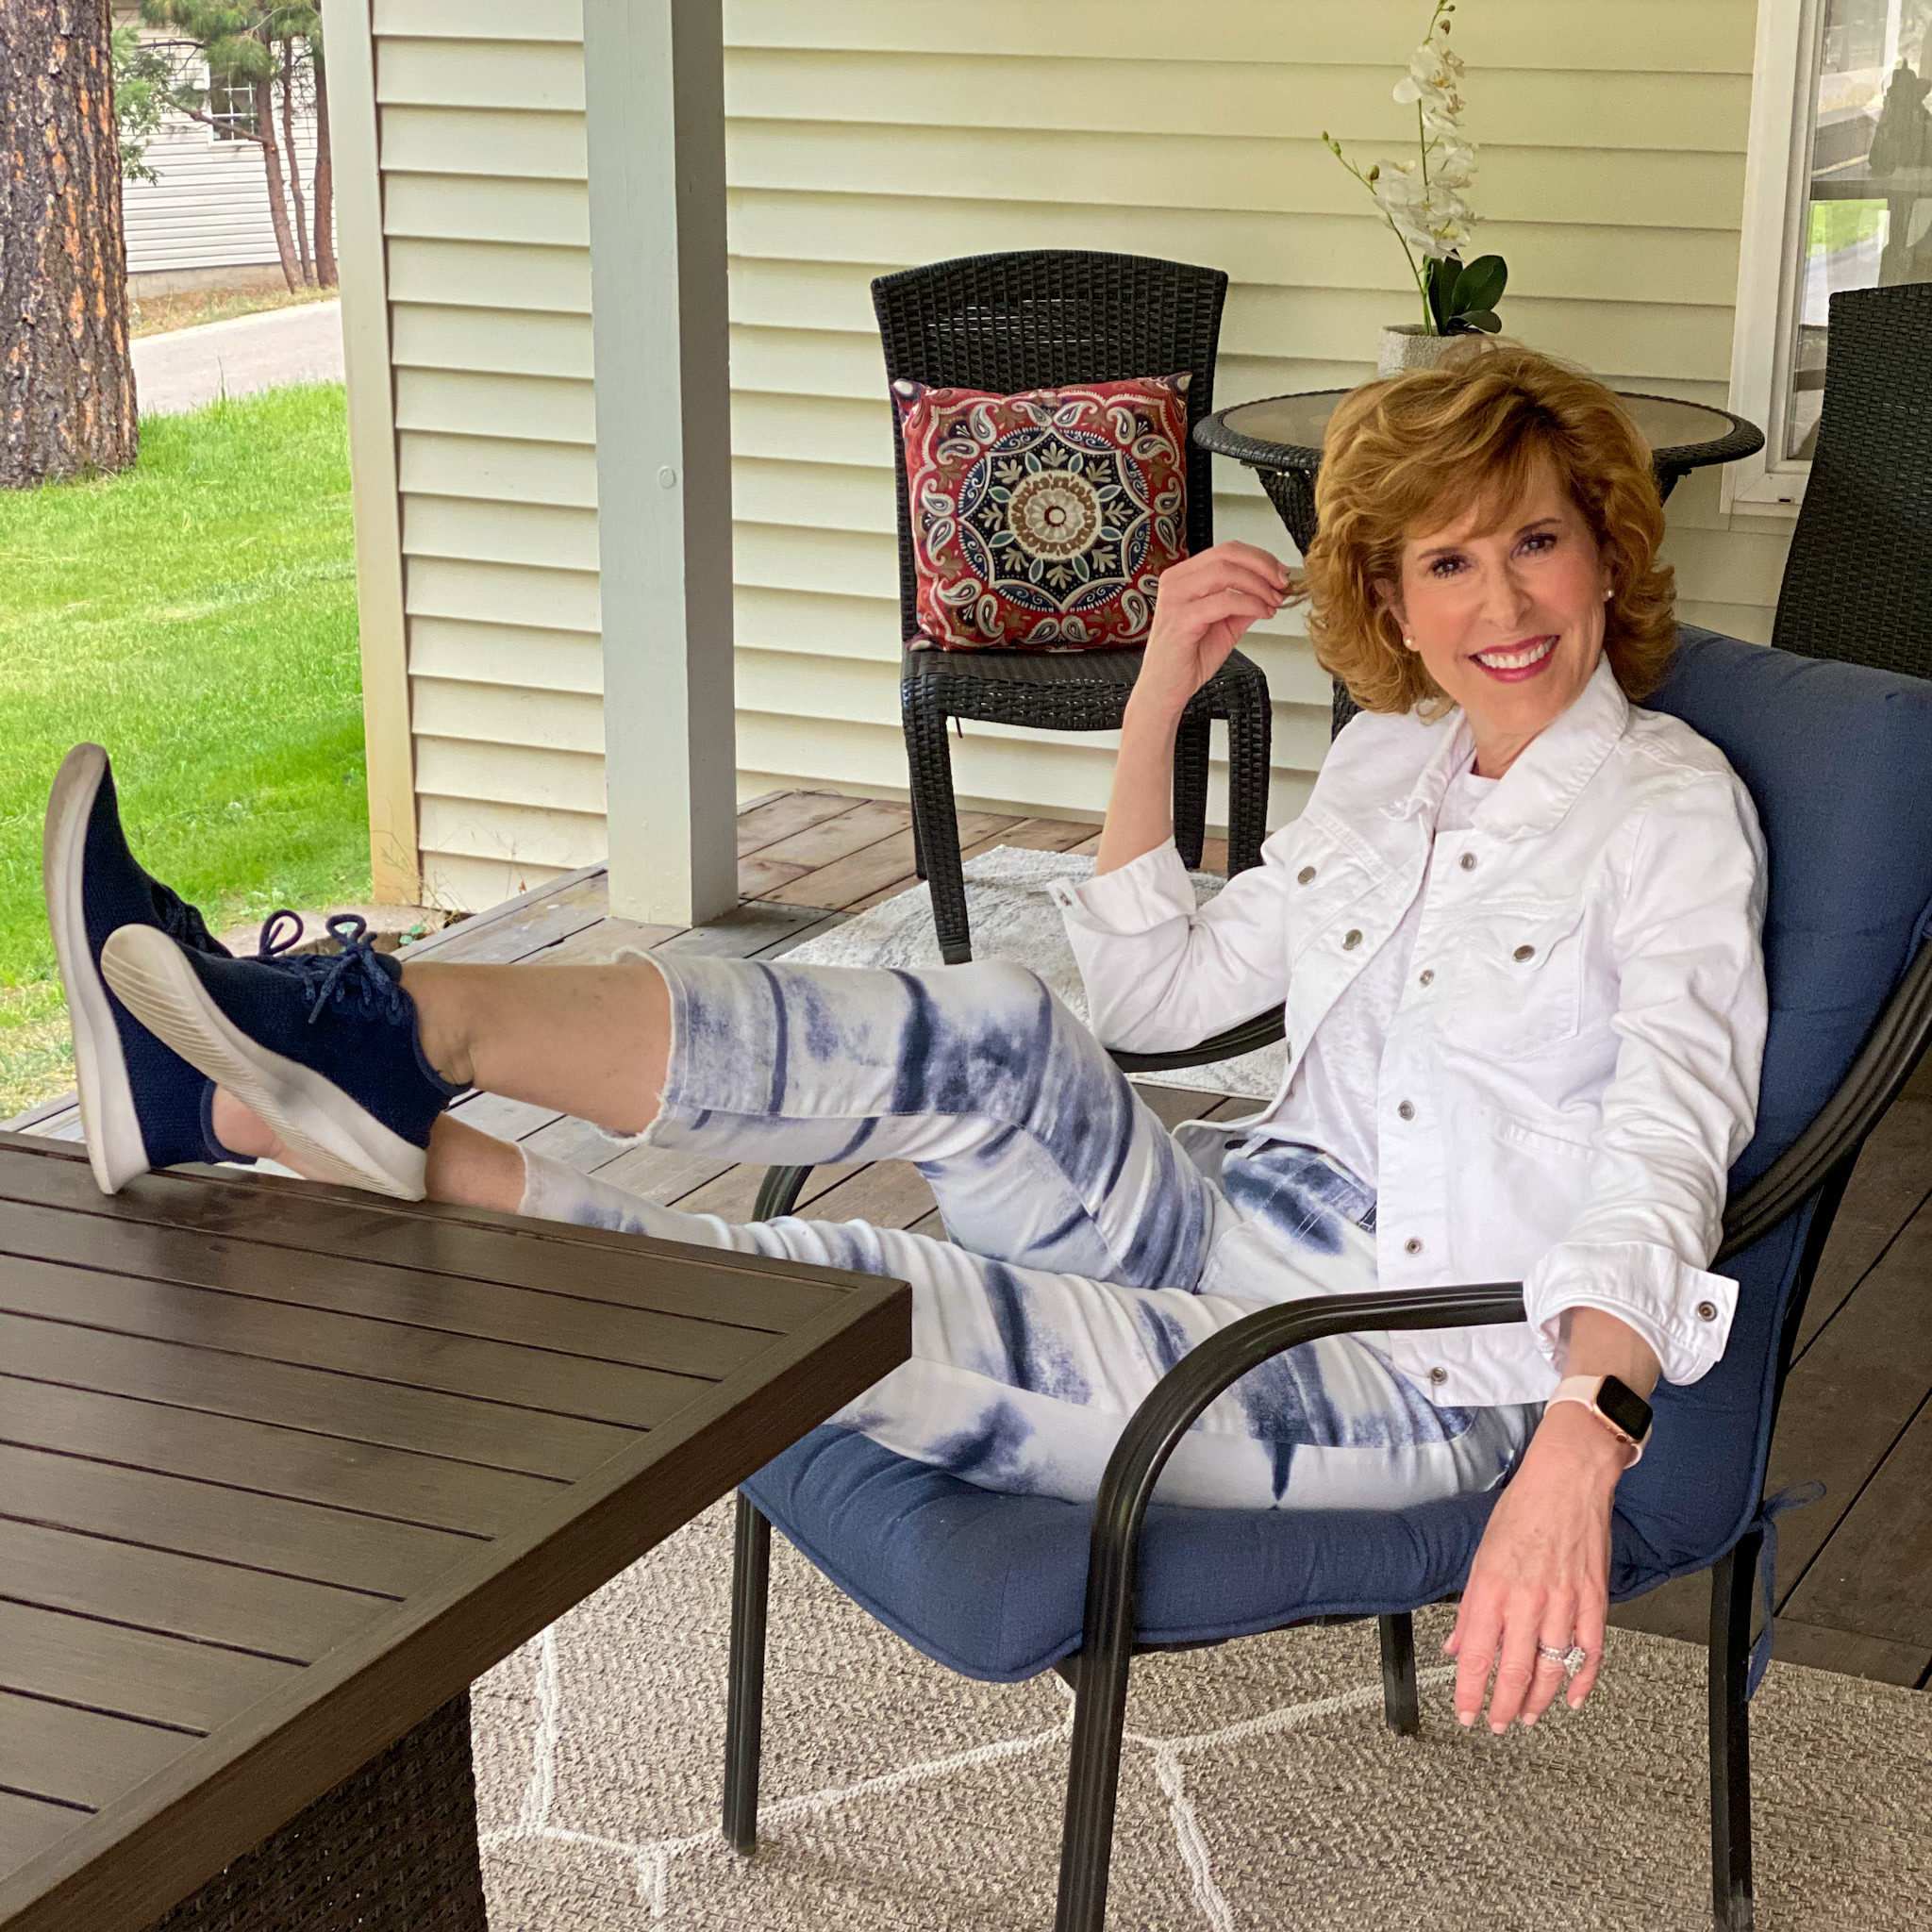 woman wearing tie dye jeans and white jeans jacket sitting with her feet up on a table on a porch